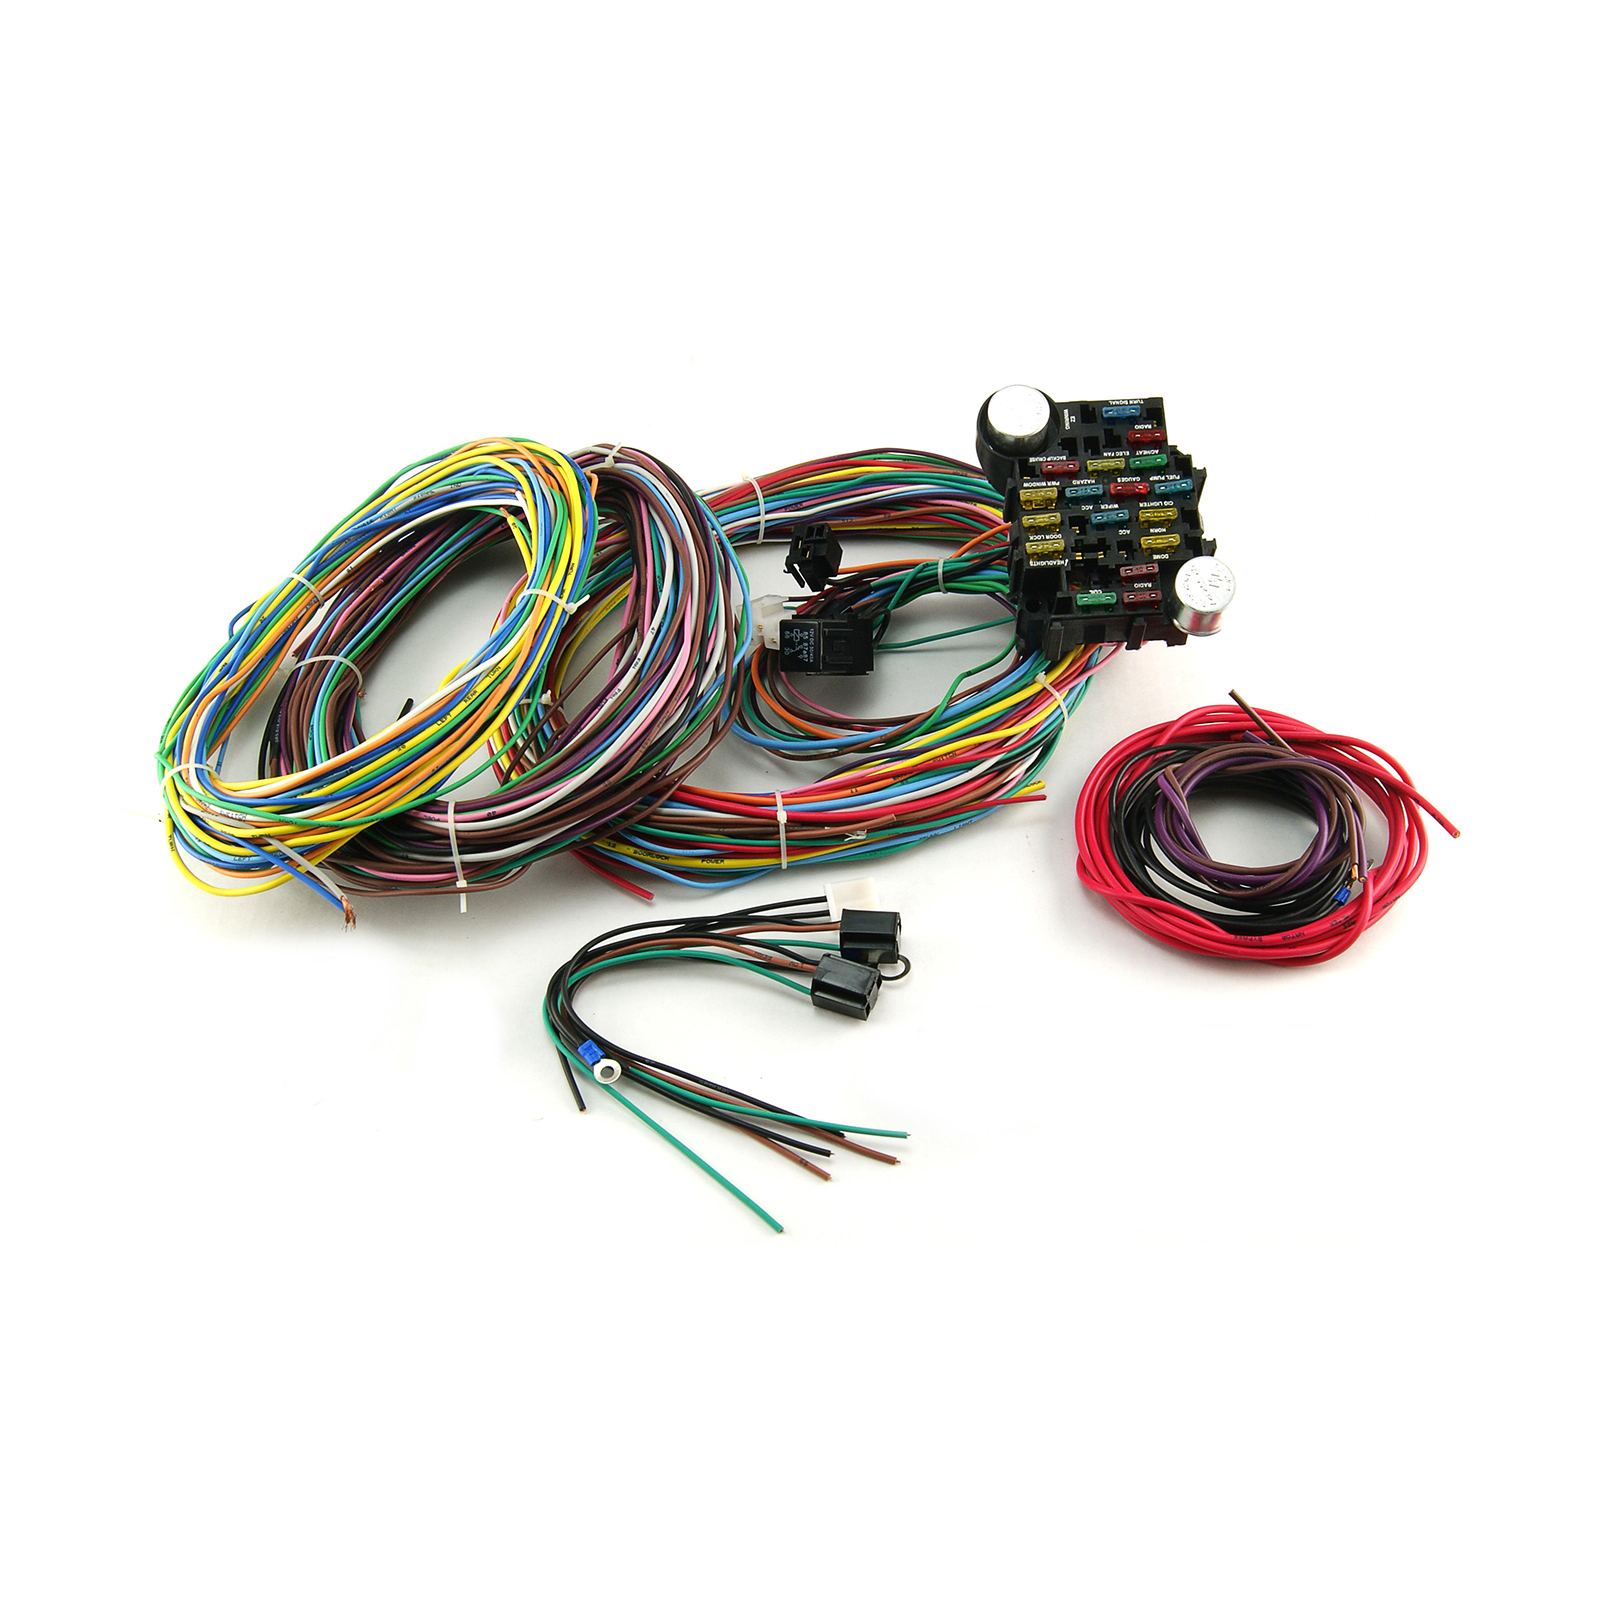 20 Circuit Wire Harness Kit Universal Item R1002 Universal Kits